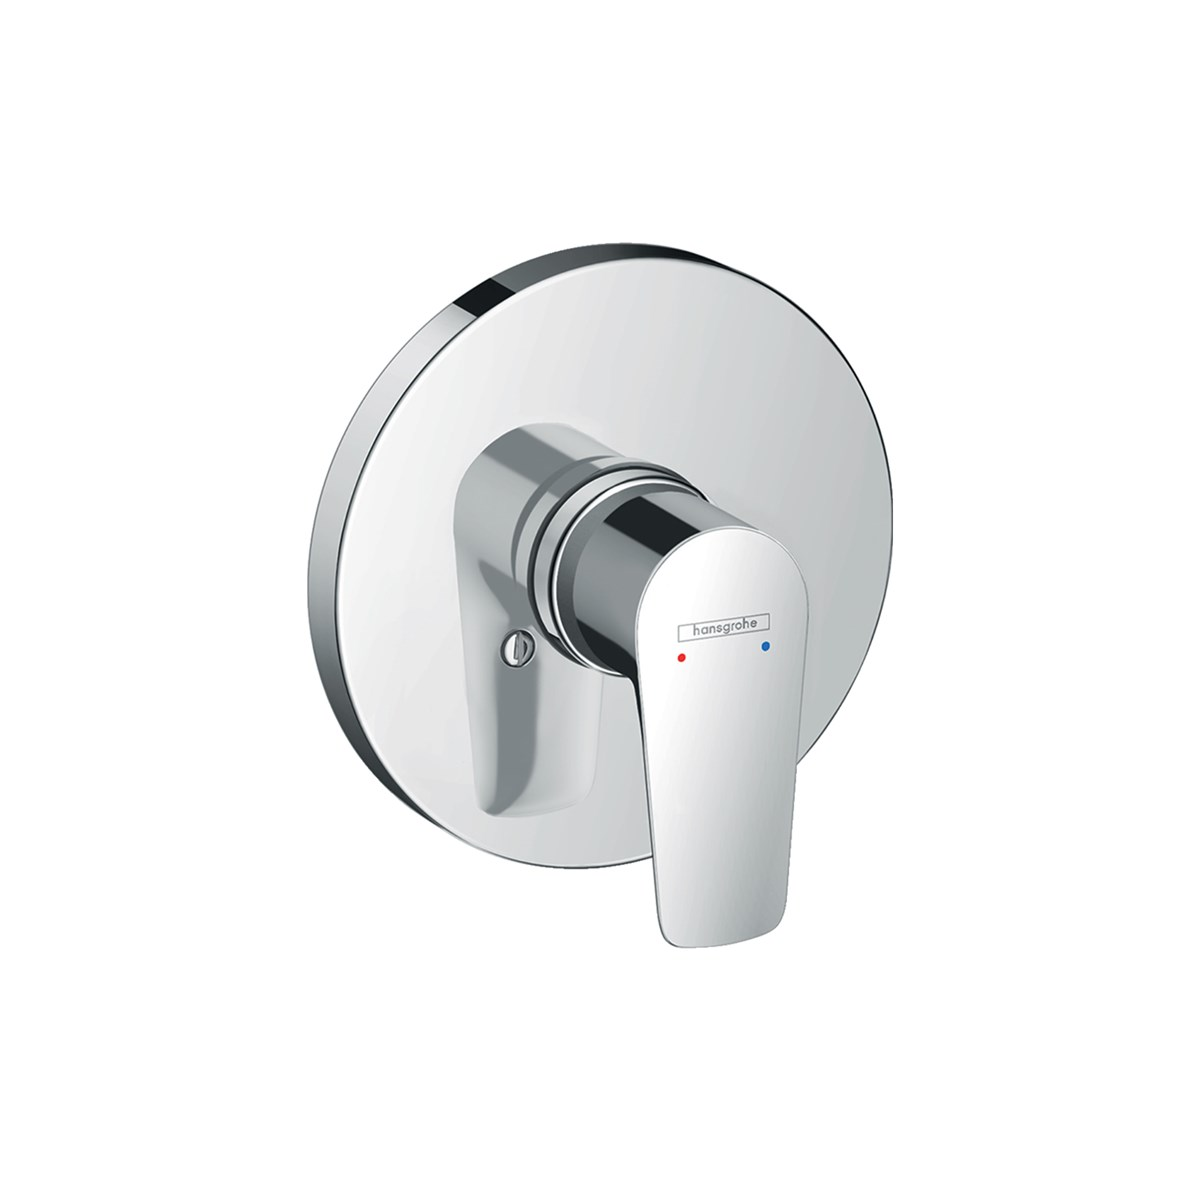 Hansgrohe-Talis-E-Shower-Mixer-Concealed-71766000-Matisse-1